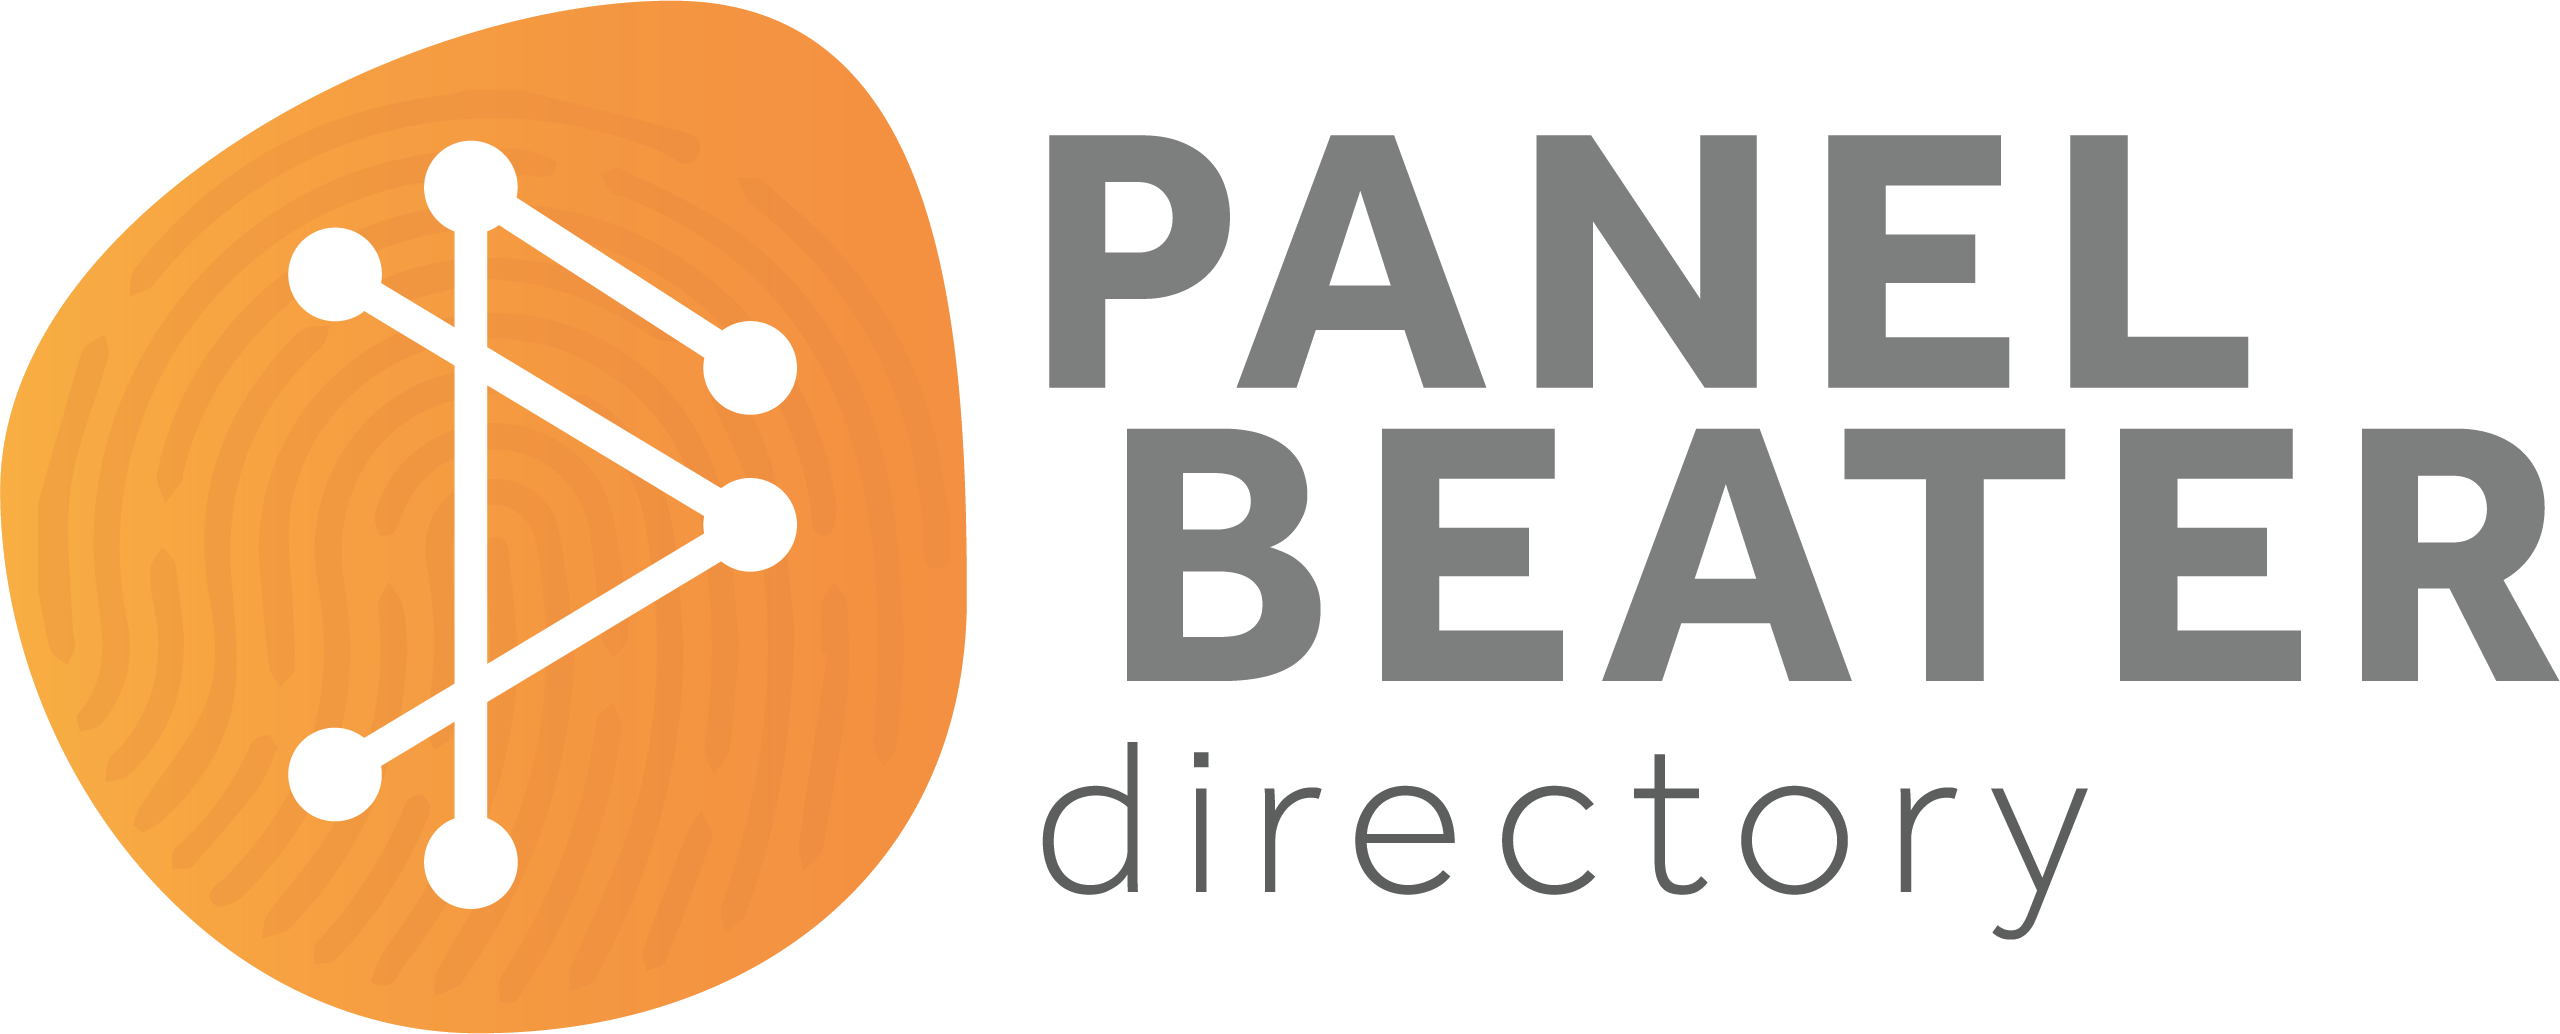 Panel Beater Directory logo